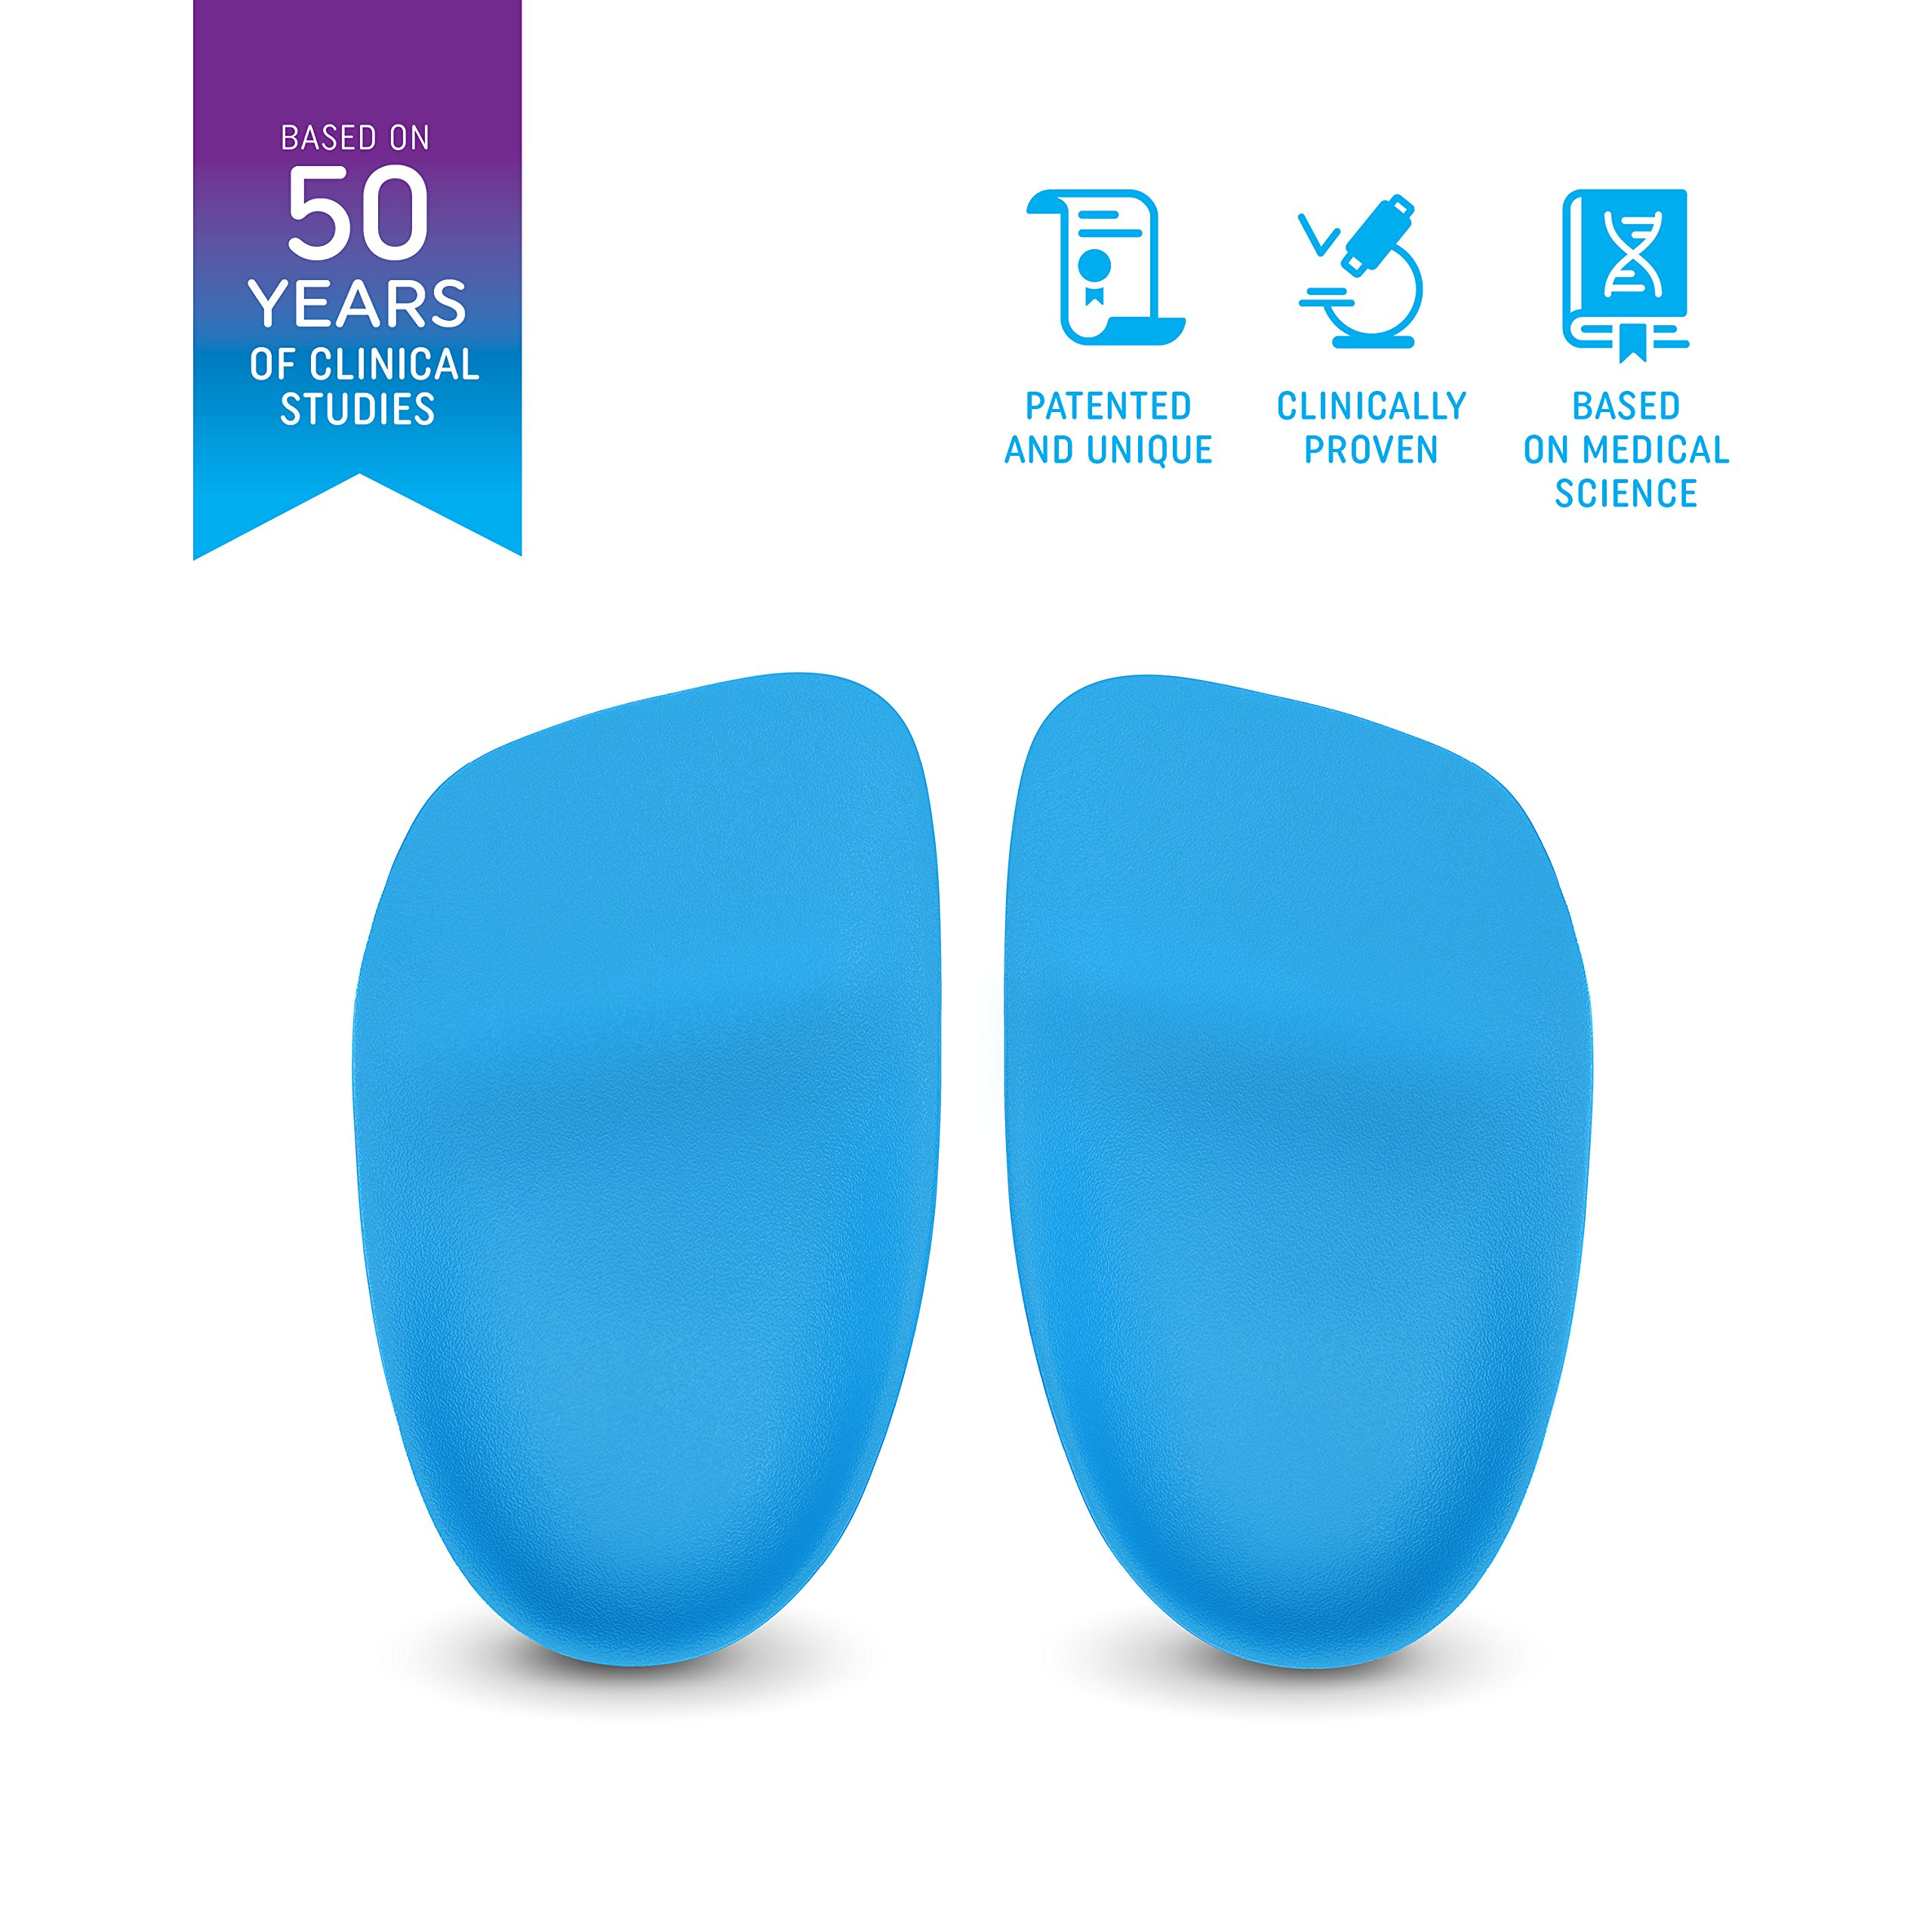 Heel That Pain Plantar Fasciitis Insoles   Heel Seats Foot Orthotic Inserts, Heel Cups for Heel Pain and Heel Spurs   Patented, Clinically Proven, 100% Guaranteed   Blue, Large (W 10.5-13, M 8.5-12)